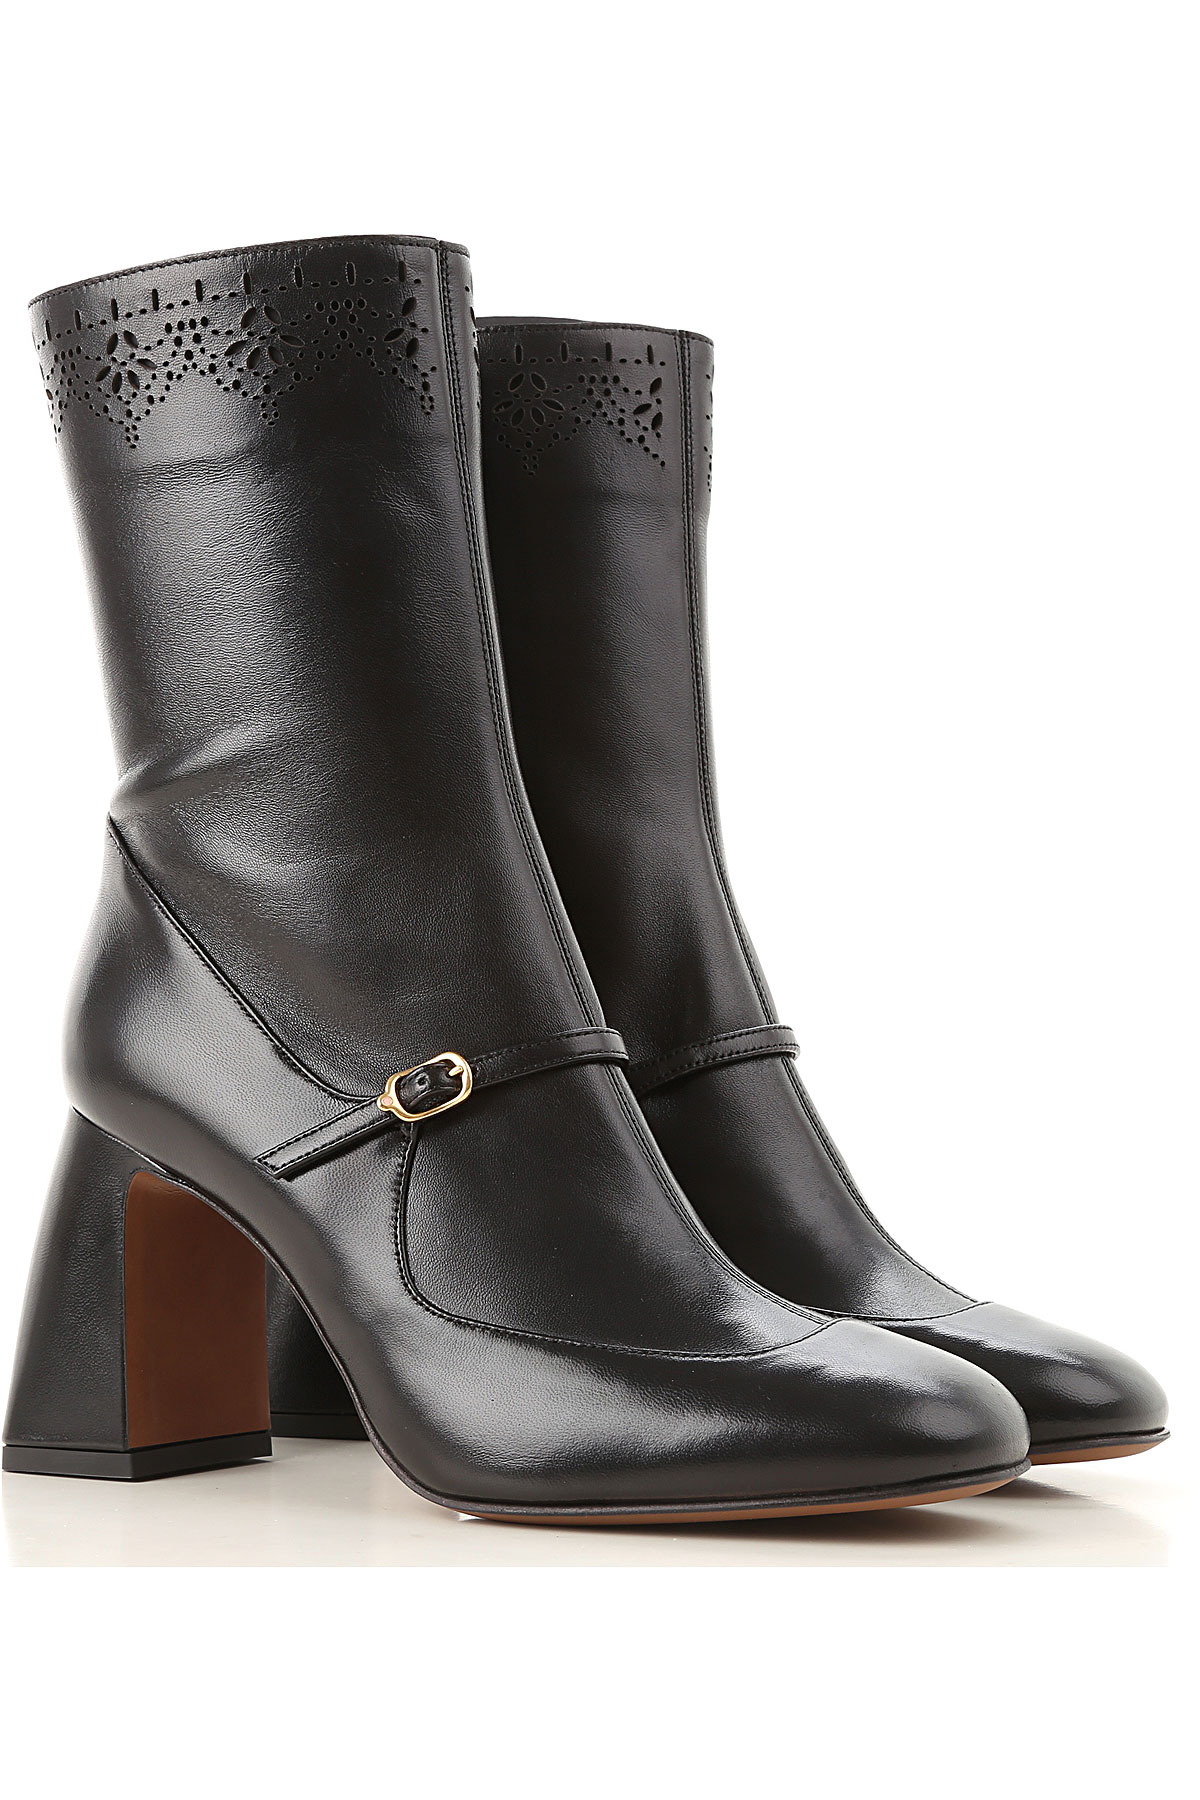 Image of Lautre Chose Boots for Women, Booties, Black, Leather, 2017, 10 6 7 8 9